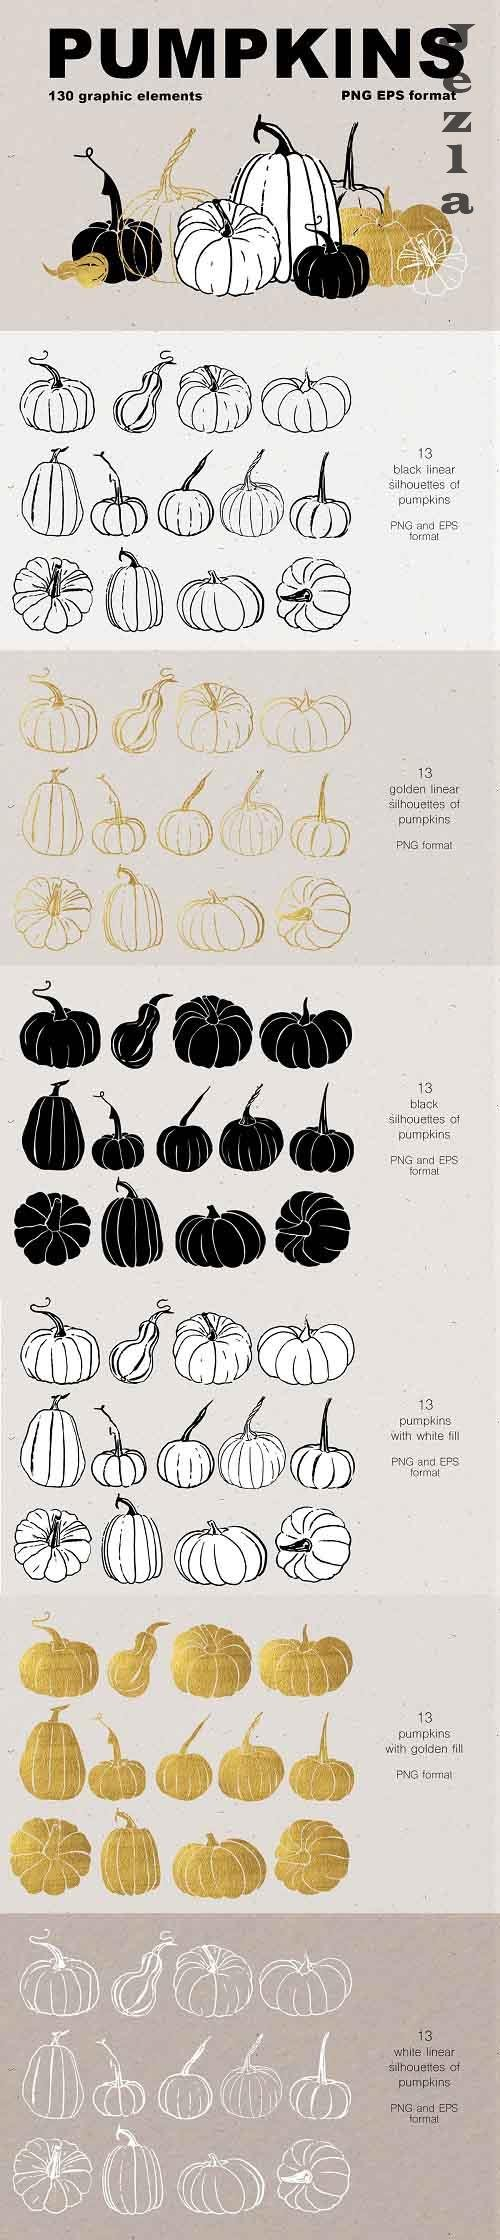 Pumpkins. Graphic collection - 5513384